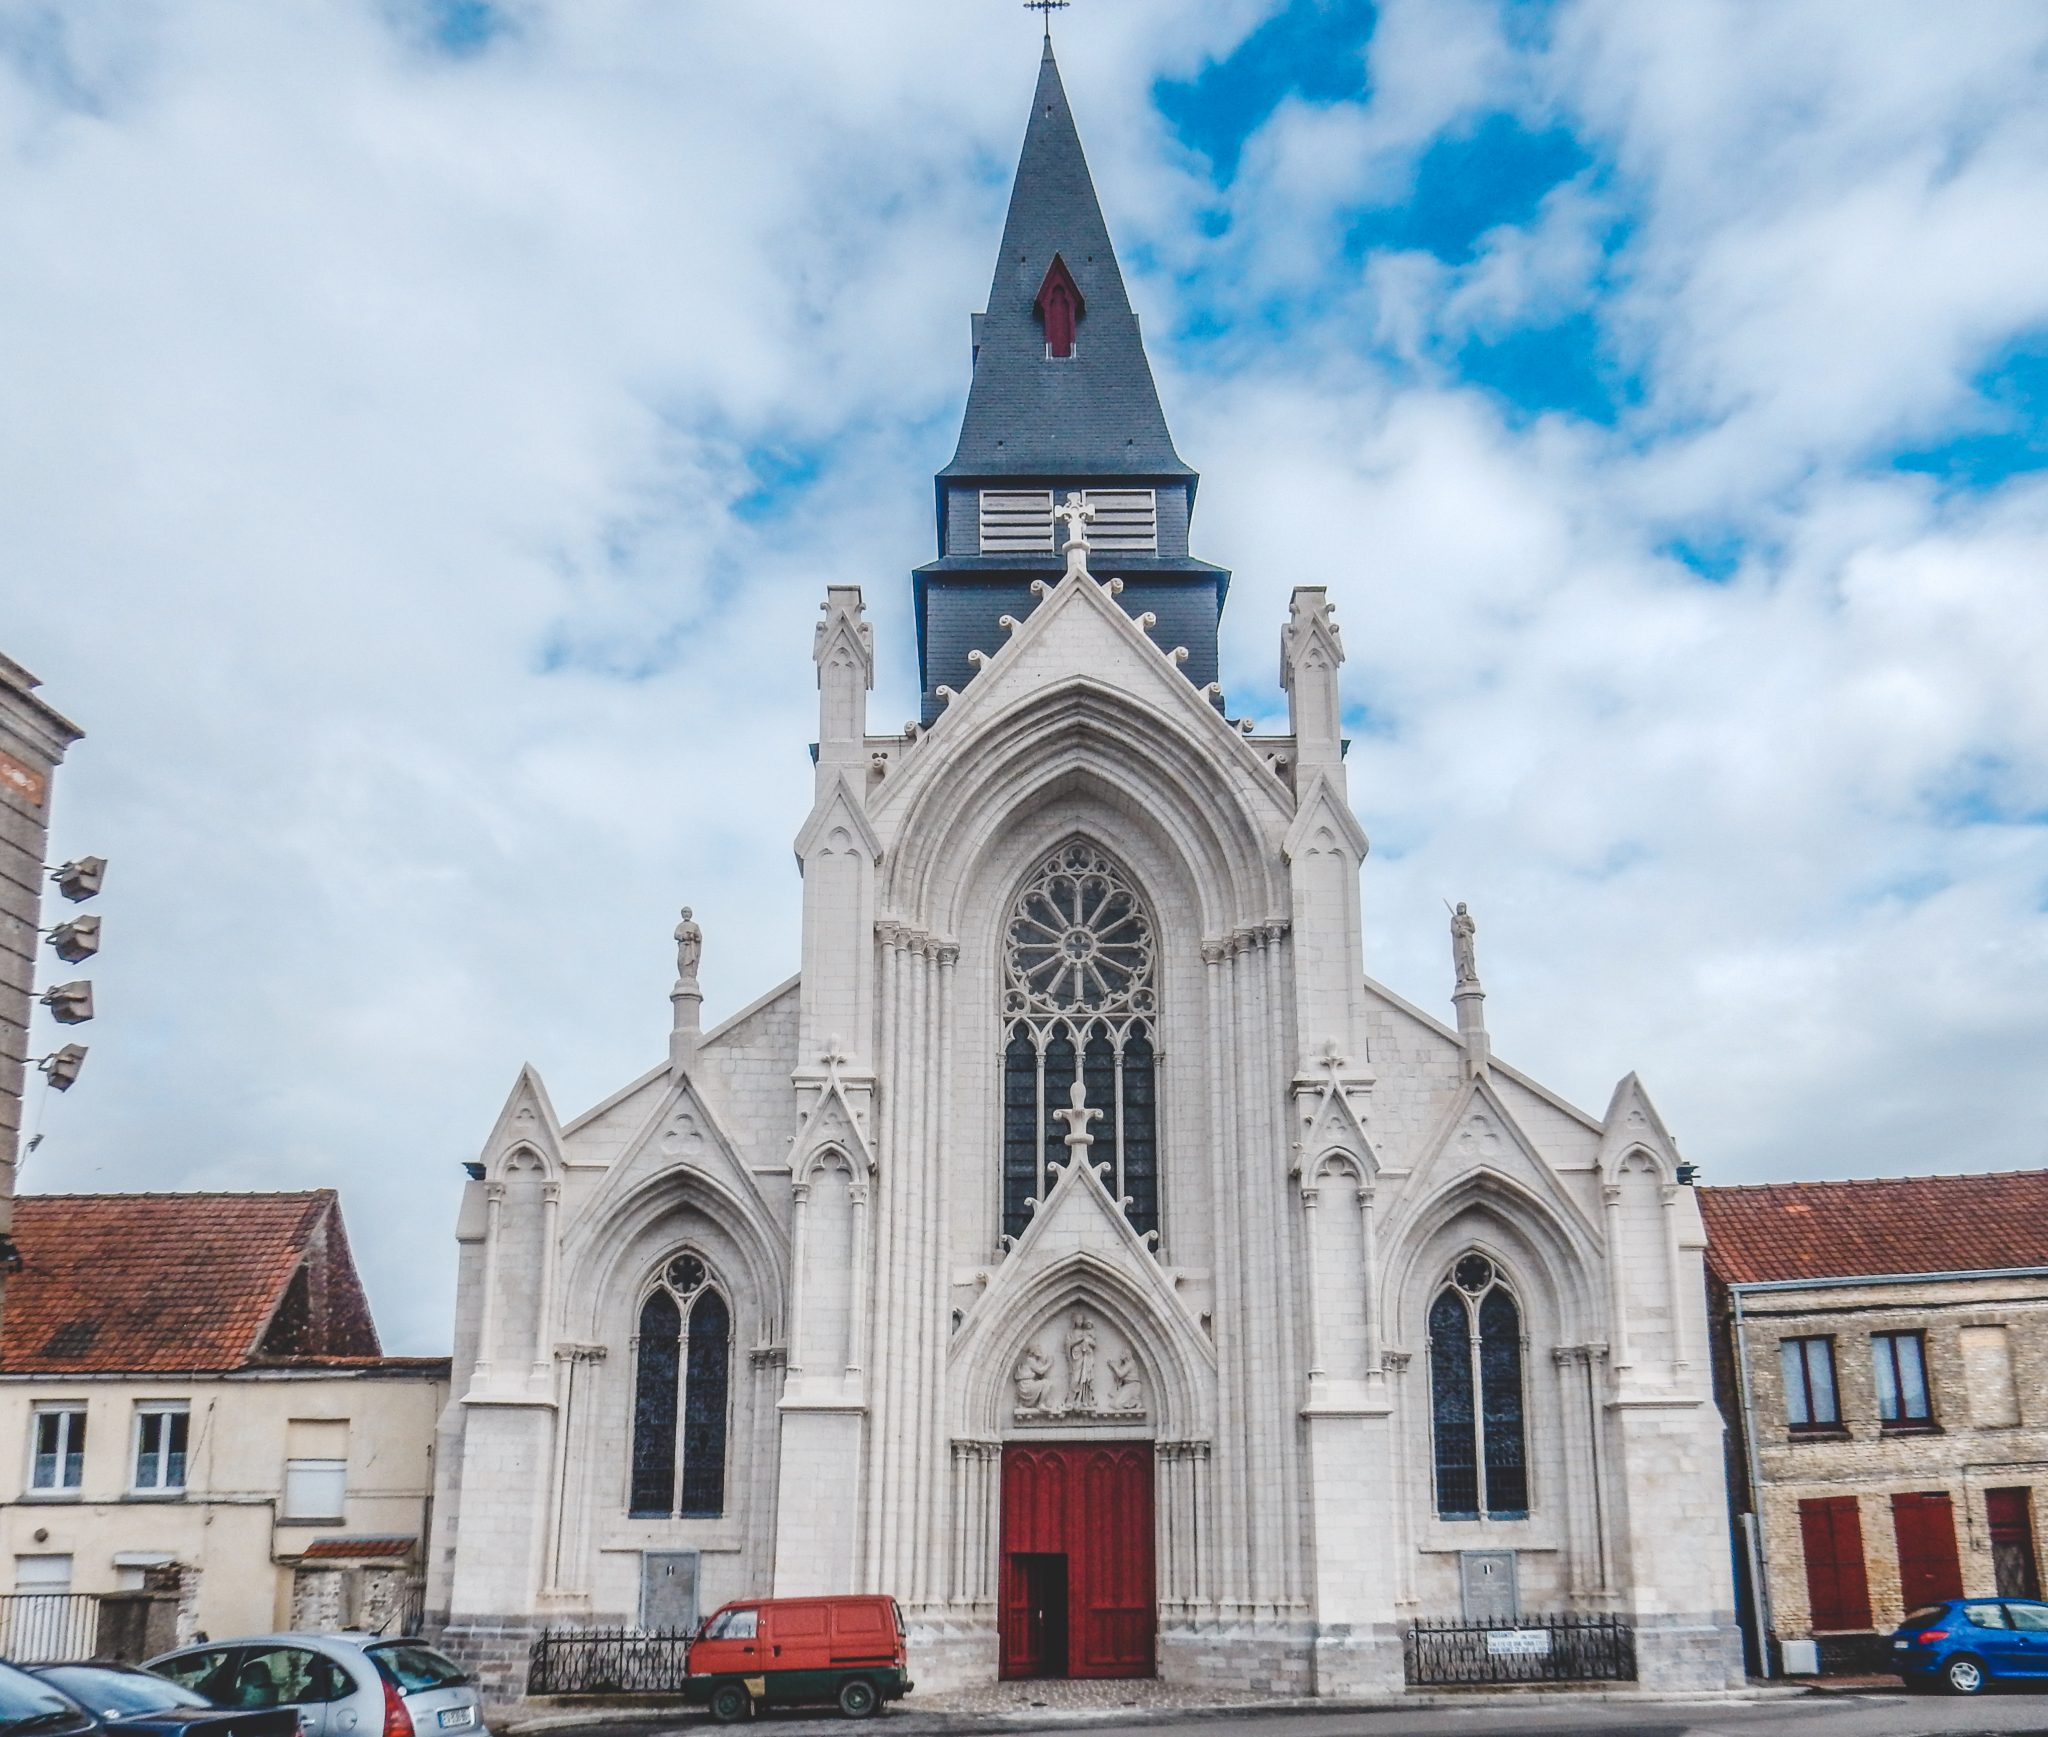 St Omer – Immaculée Conception